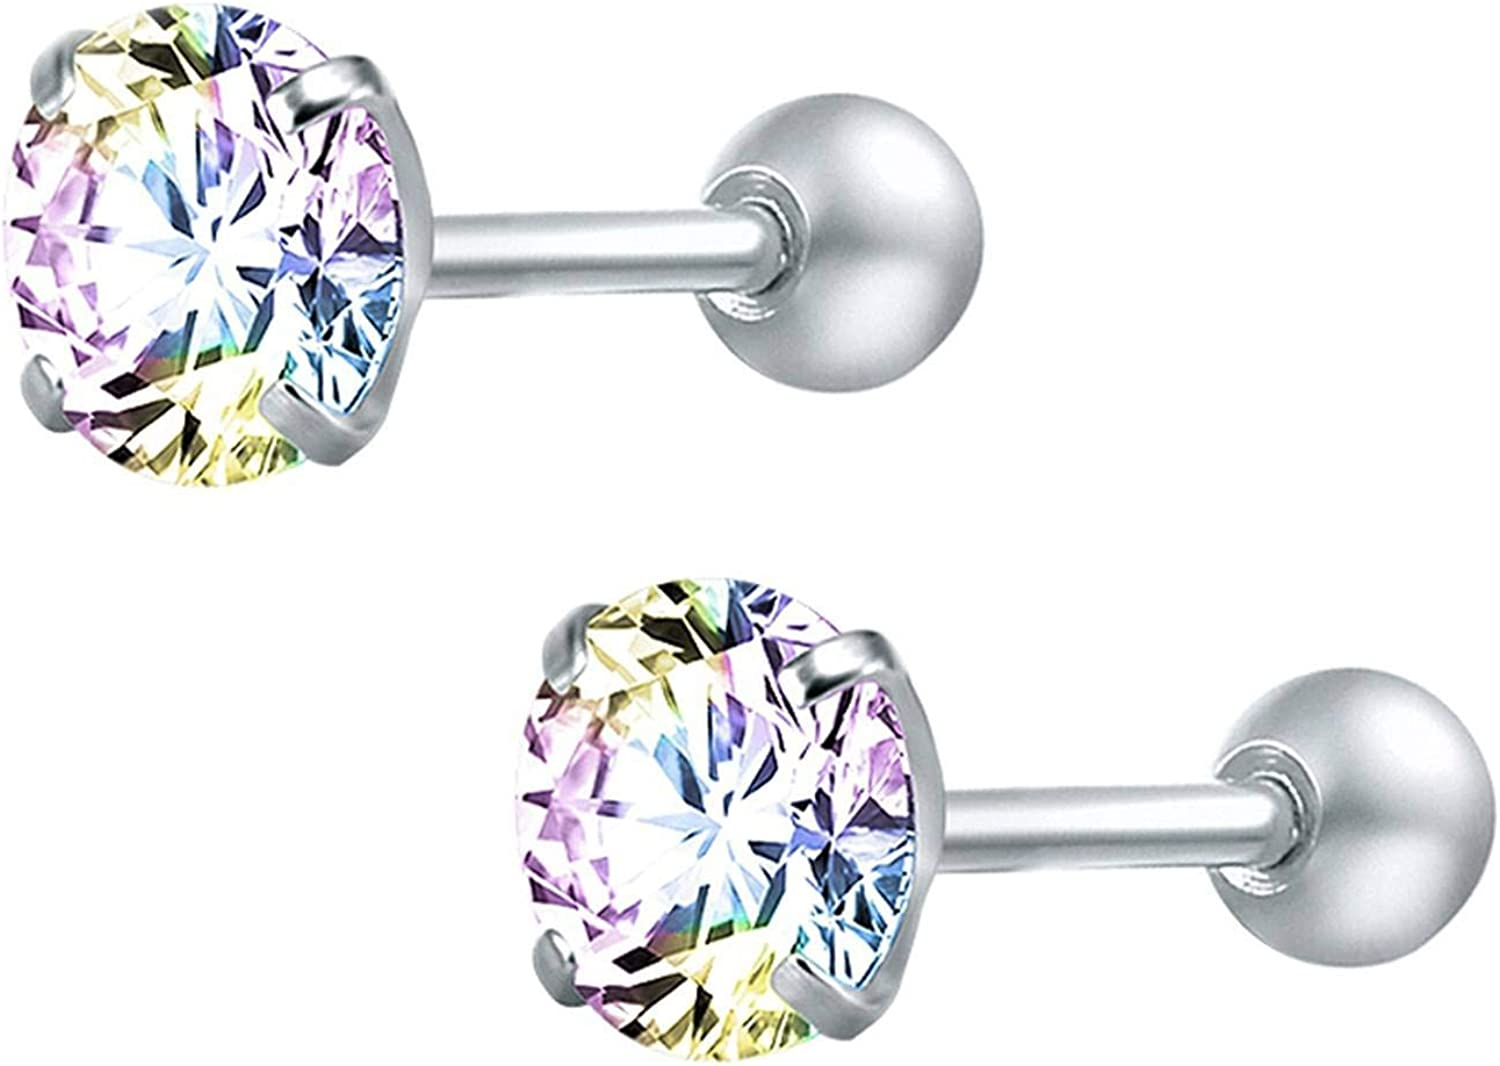 Tiny Round Crystal Studs Earrings Screw Ball Stainless Steel Female Earrings Mini,Pink Round,4mm